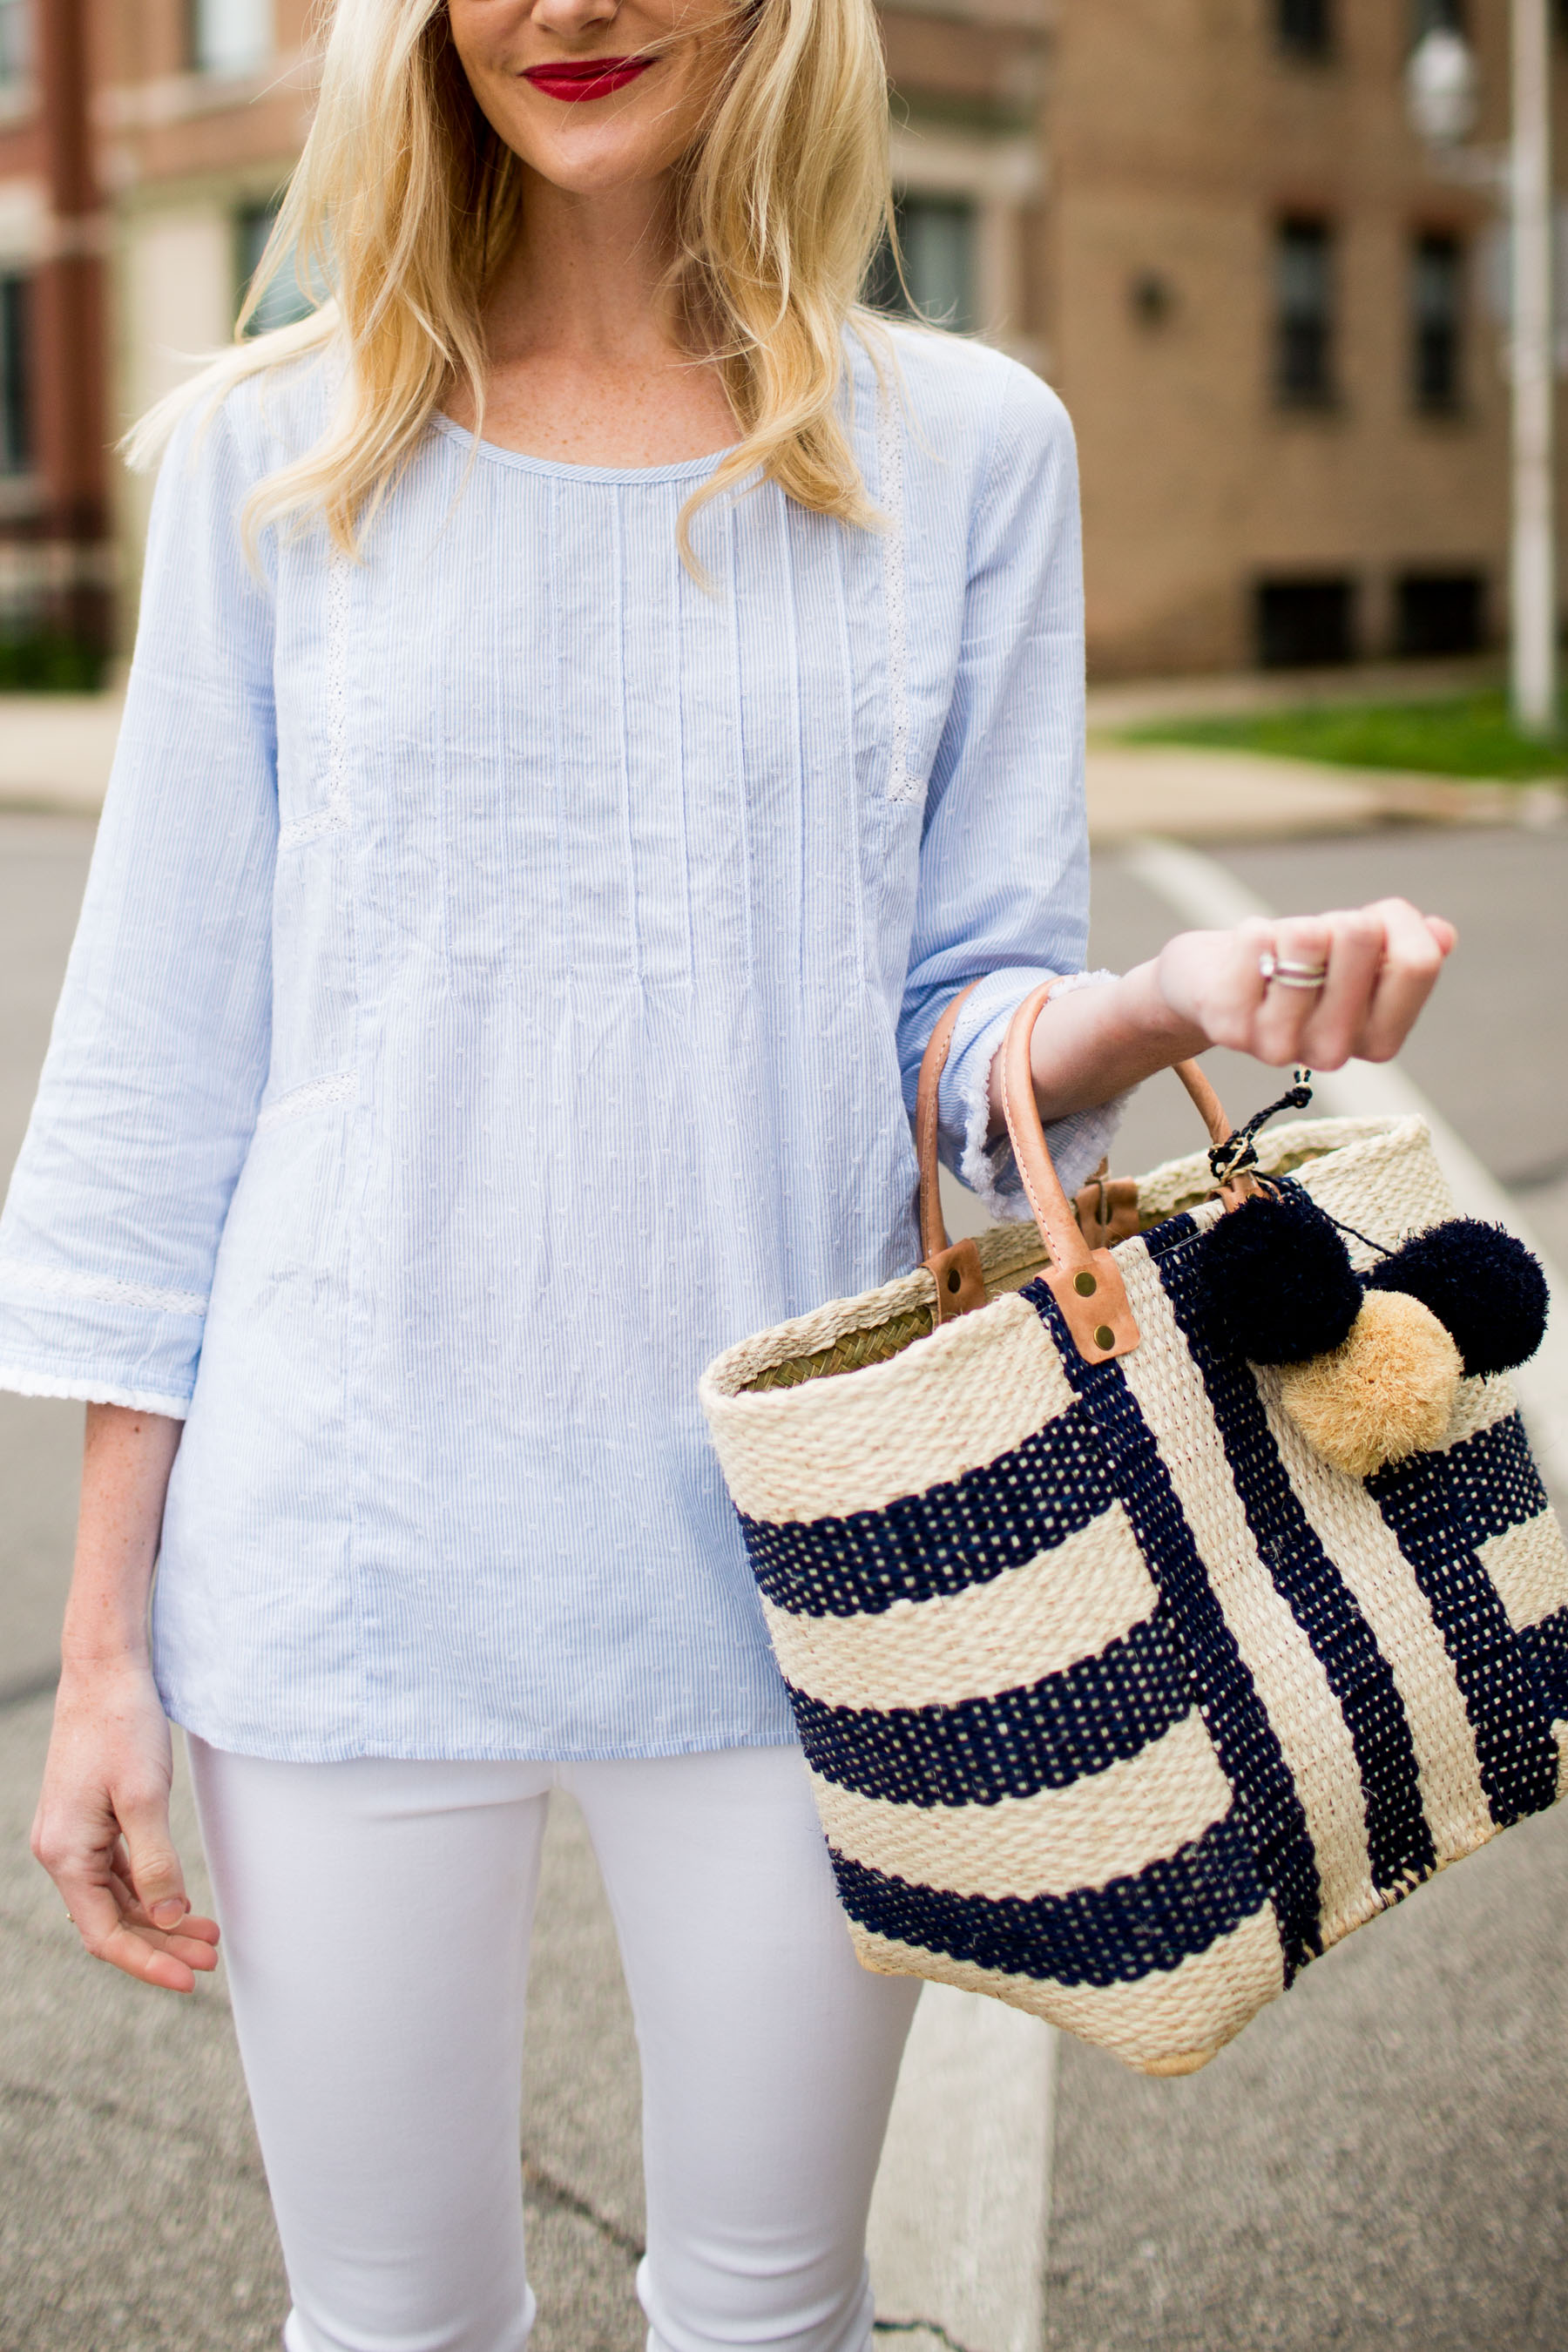 Caslon Pinktuck Pleat Top / Mar Y Sol Tote / White Skinny Jeans